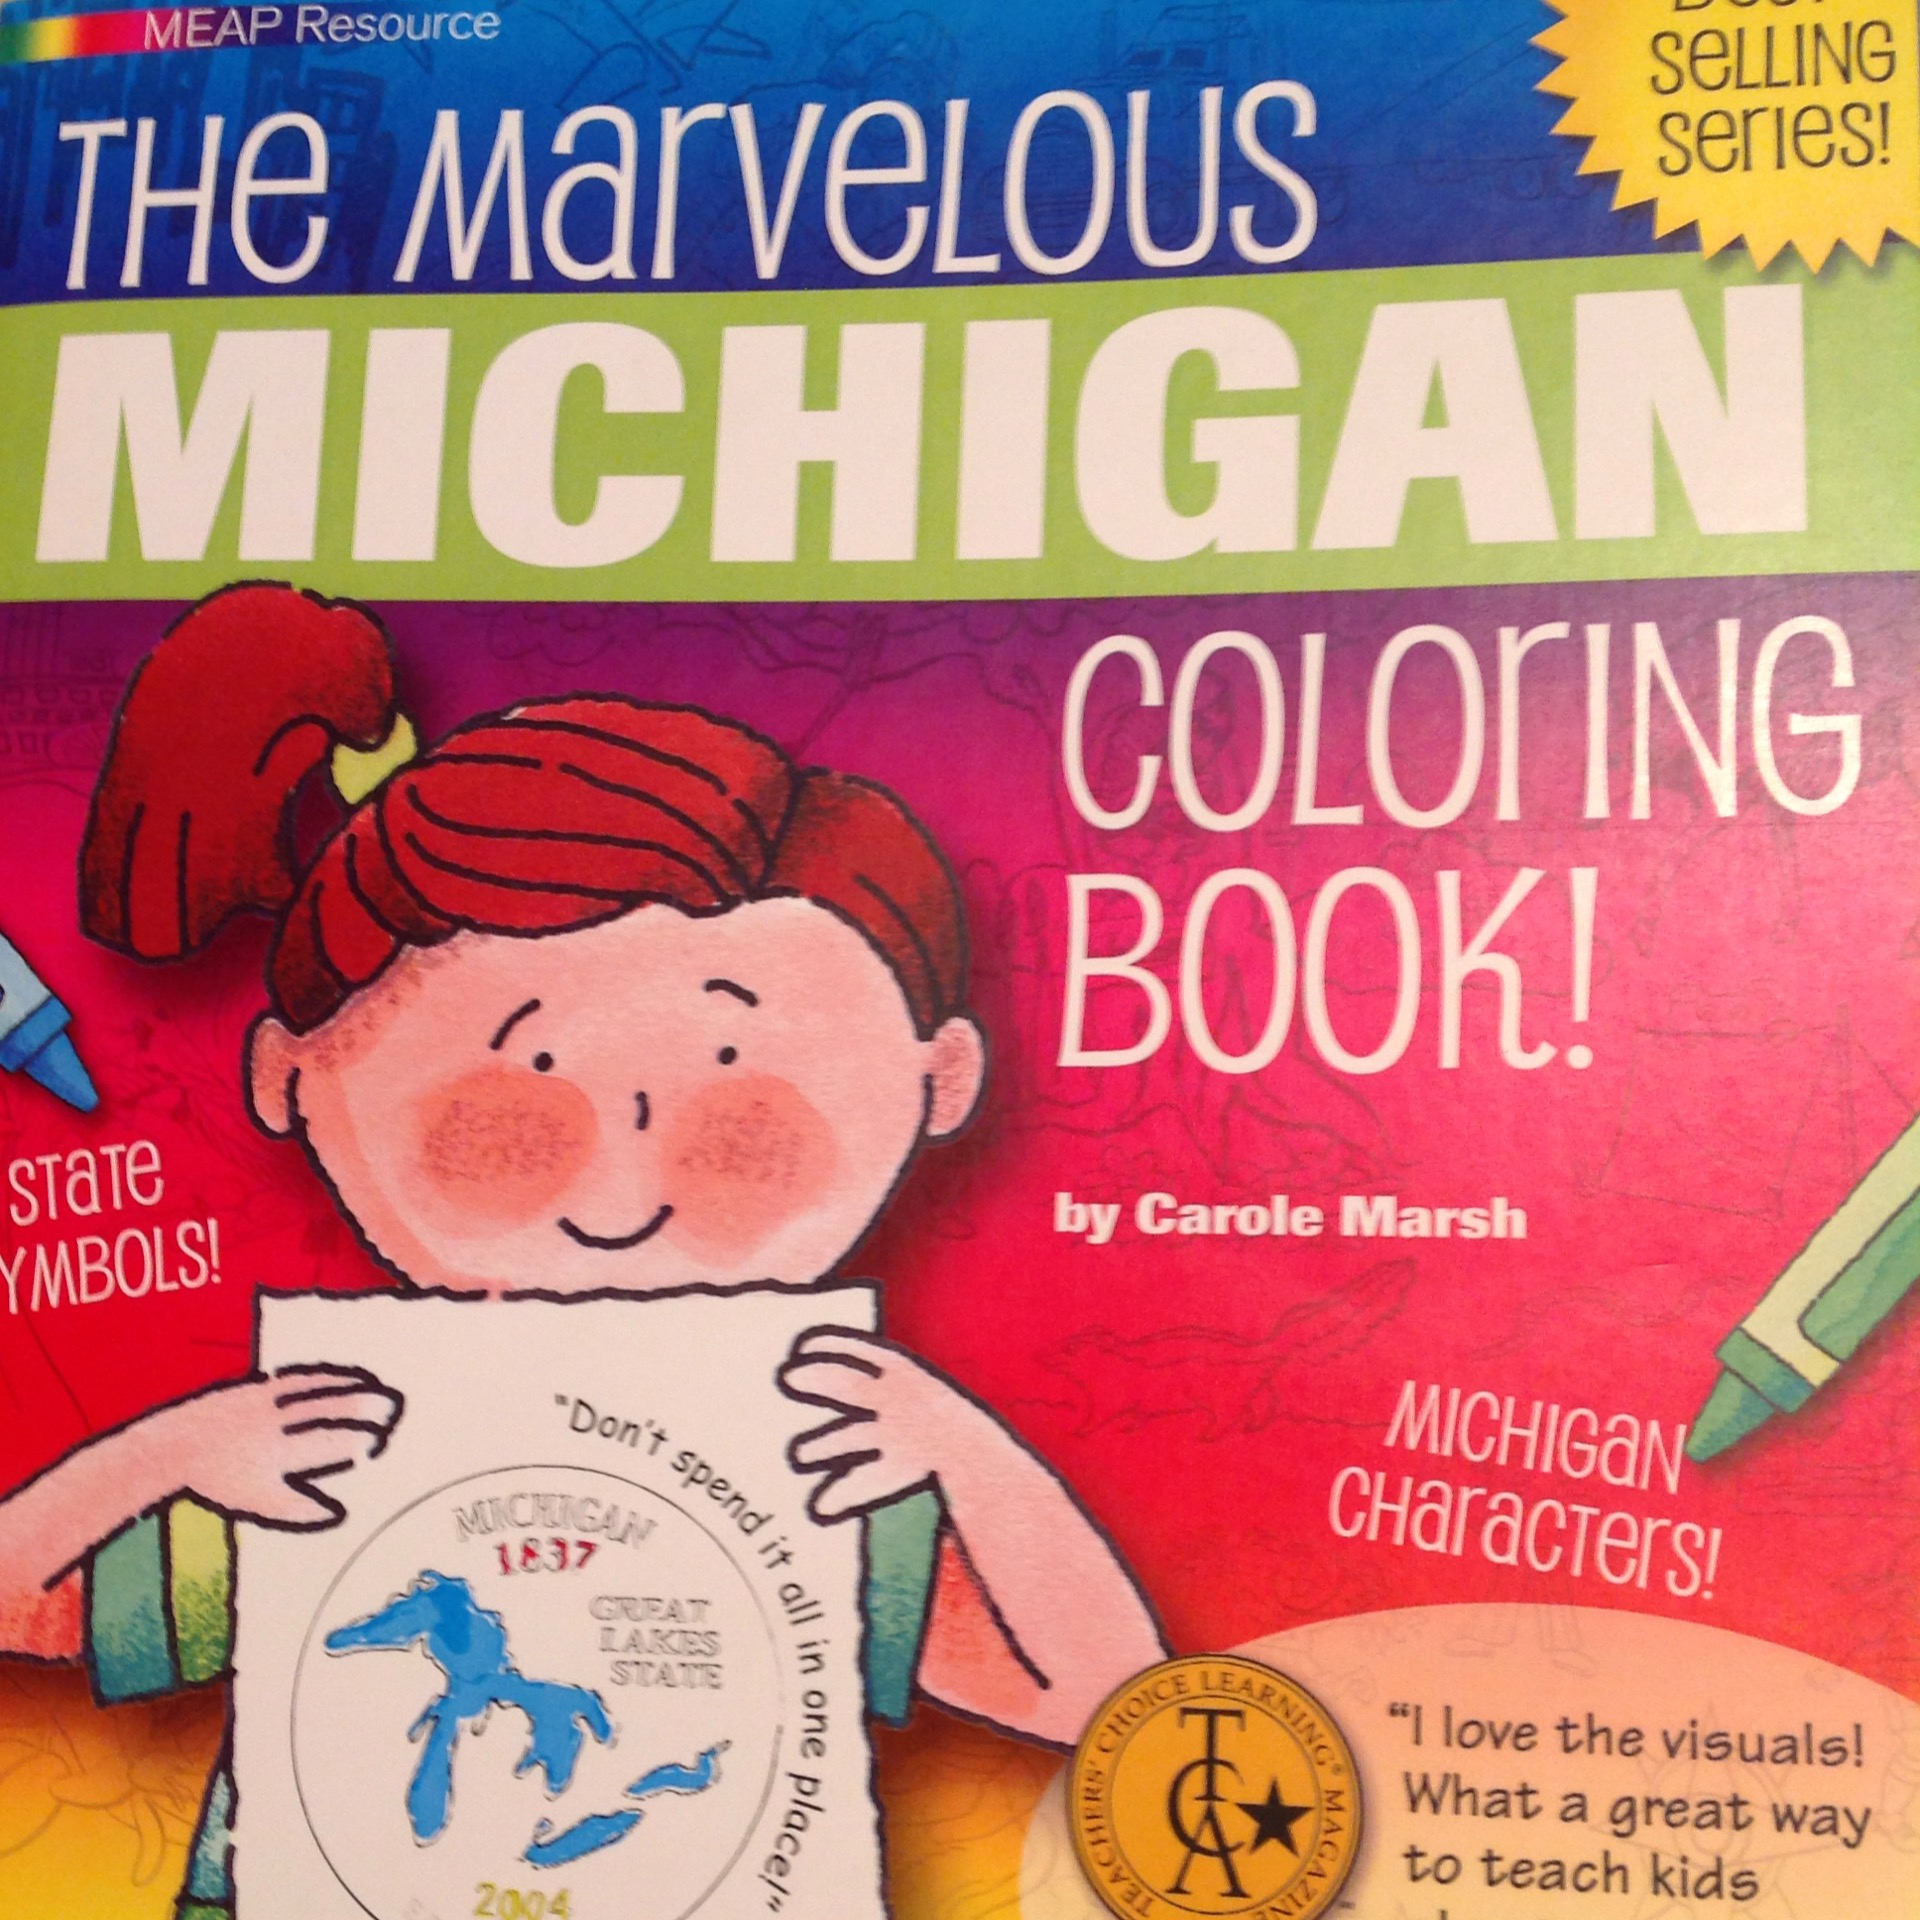 Marvelous Michigan Coloring Book – Leelanau Historical Society Museum